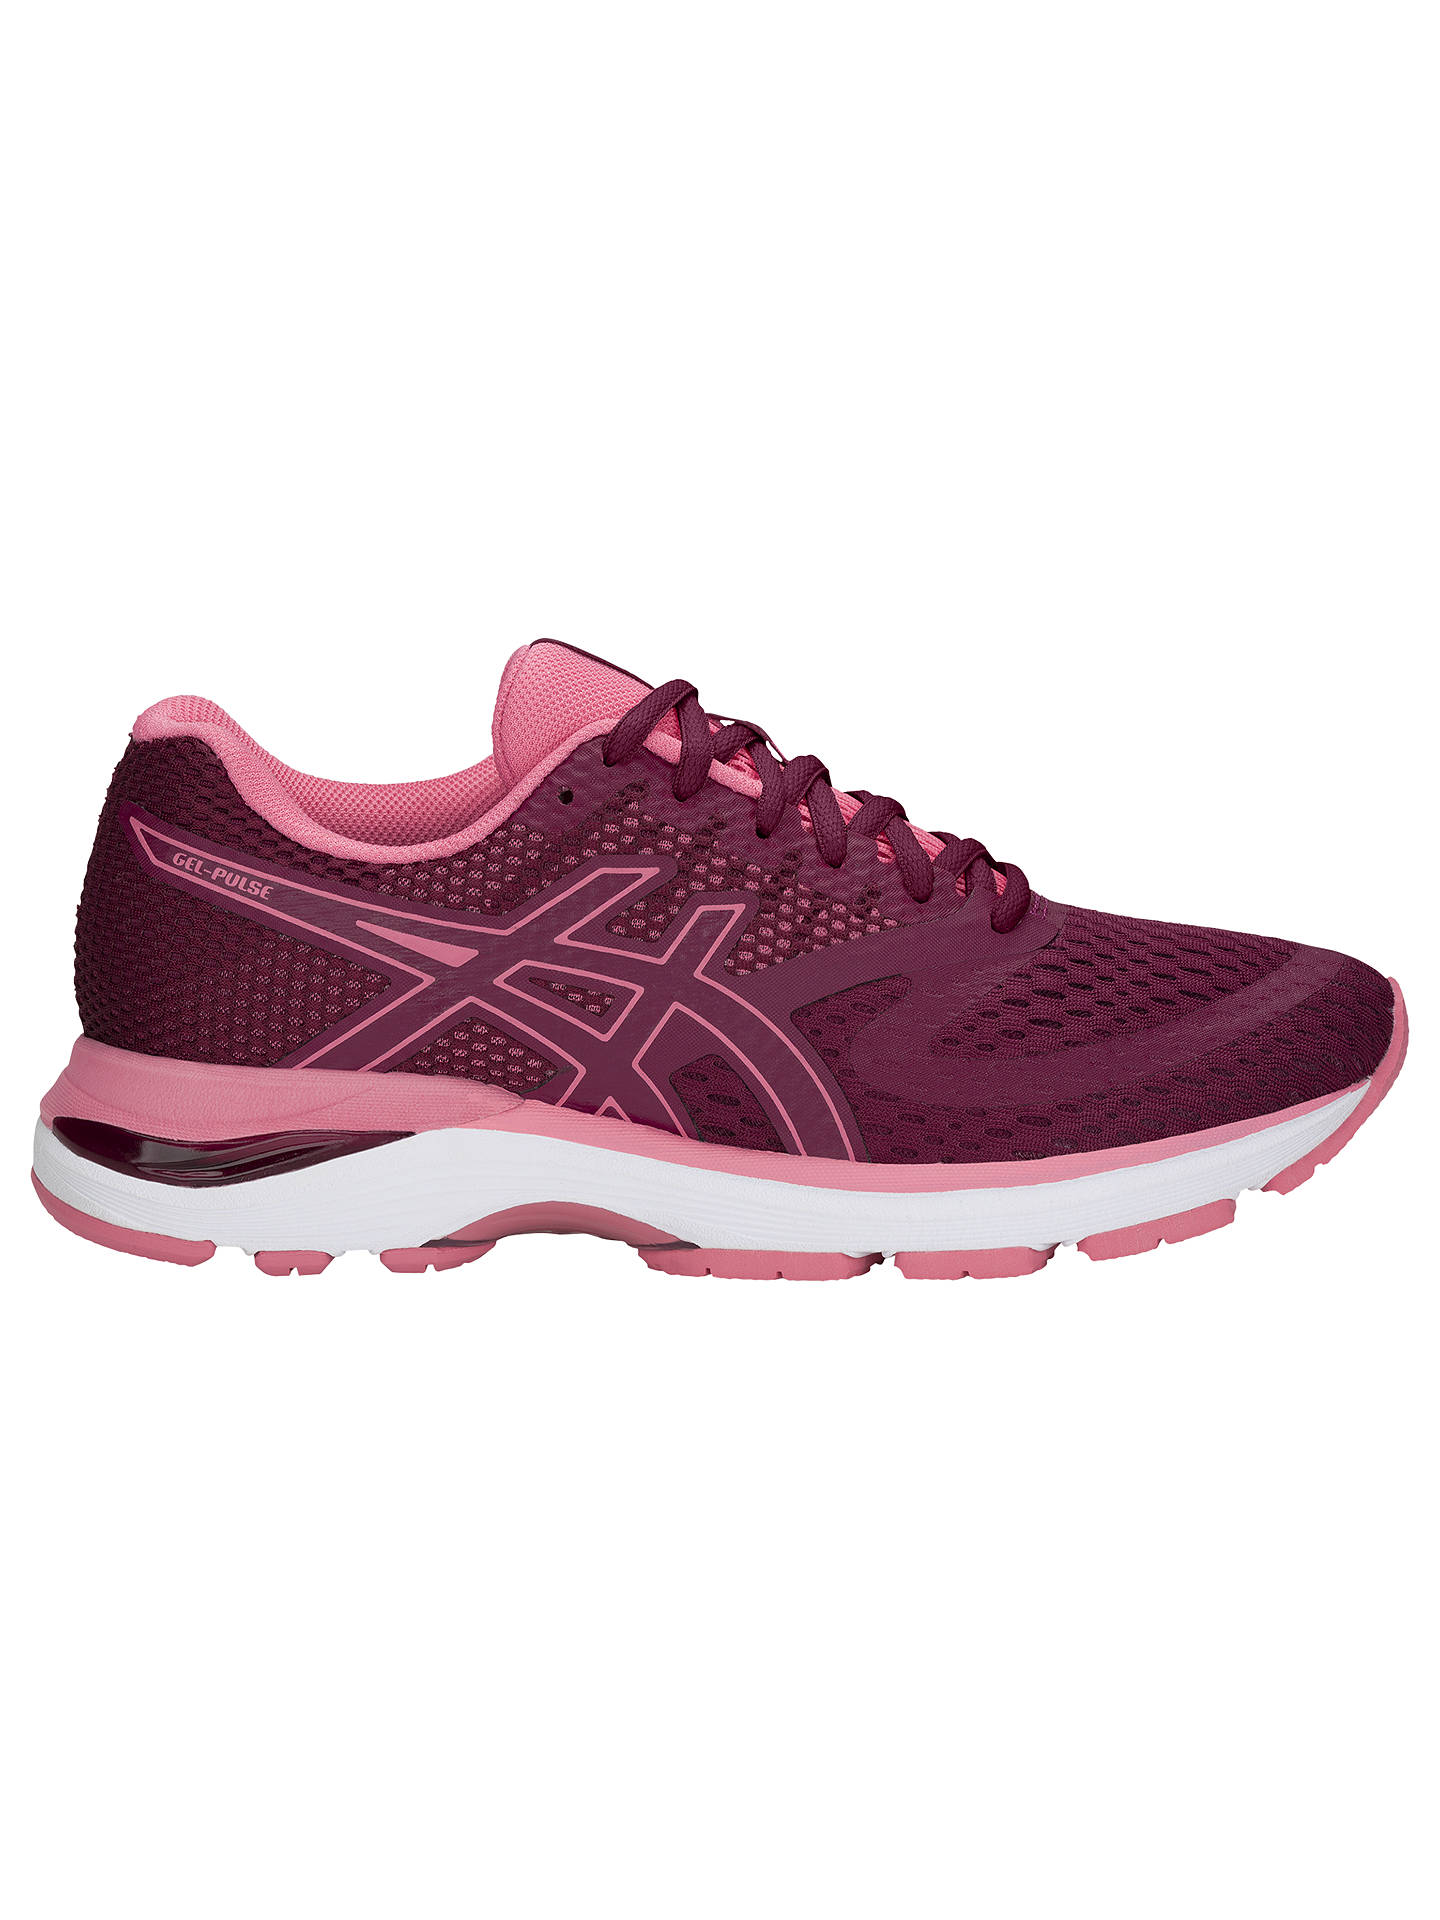 new arrival e3eb5 fb372 Buy ASICS GEL-PULSE 10 Women s Running Shoes, Cordovan, 4 Online at  johnlewis ...